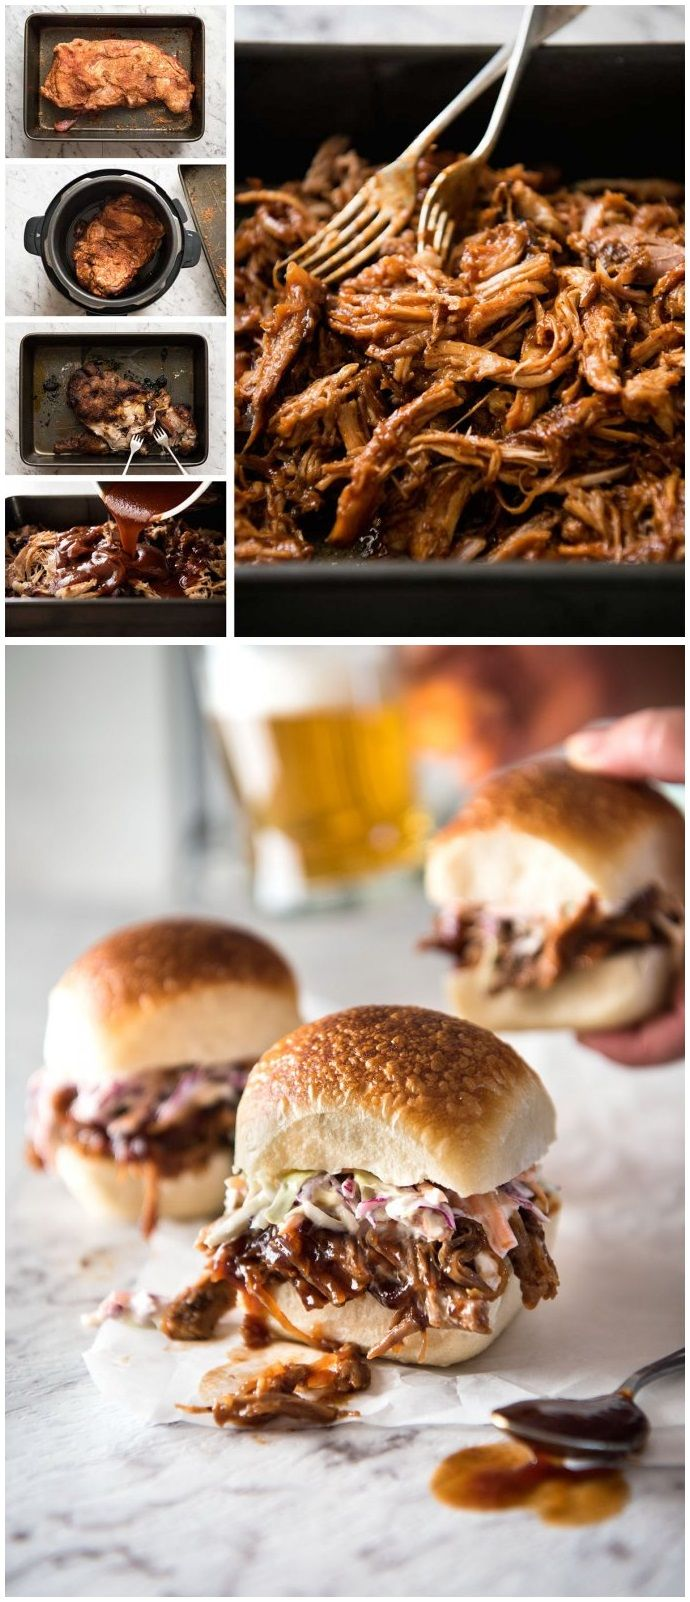 Slow Cooker BBQ Pulled Pork Sandwich. Tender perfectly seasoned slow cooker pulled pork smothered in a homemade BBQ Sauce (see notes for using store bought). Add a classic coleslaw then pile it high onto buns! Great food for gatherings - easy and good value to feed a crowd. Make this in the slow cooker, oven or pressure cooker.